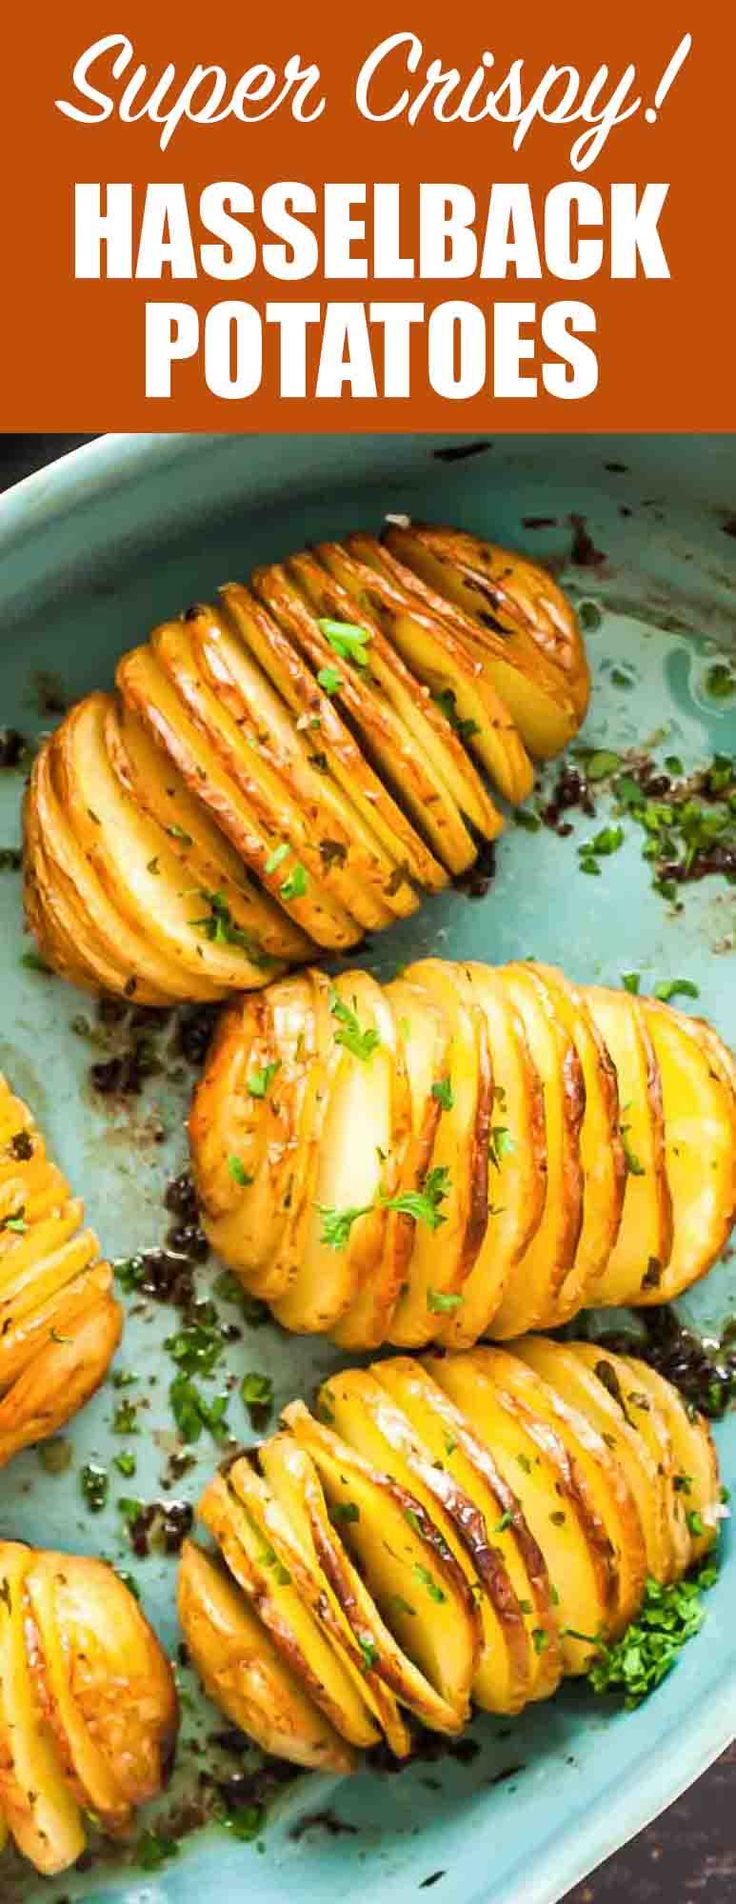 Crispy Hasselback Potatoes! Vertical slices and an extra-long roast in the oven makes these potatoes both beautiful and delicious. So many crispy edges! Perfect holiday side dish.